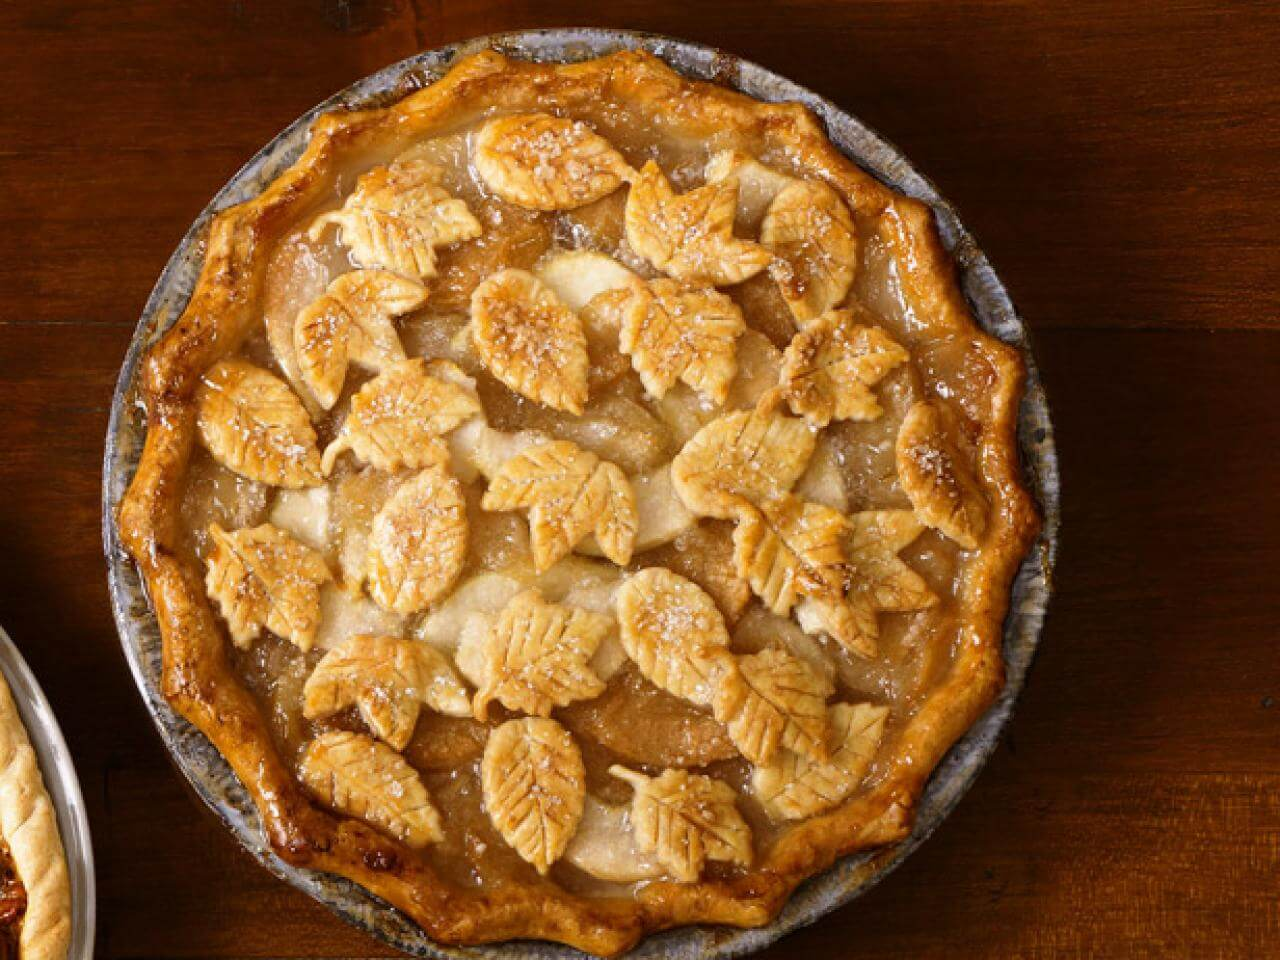 Apple ginger pear pies for thanksgiving